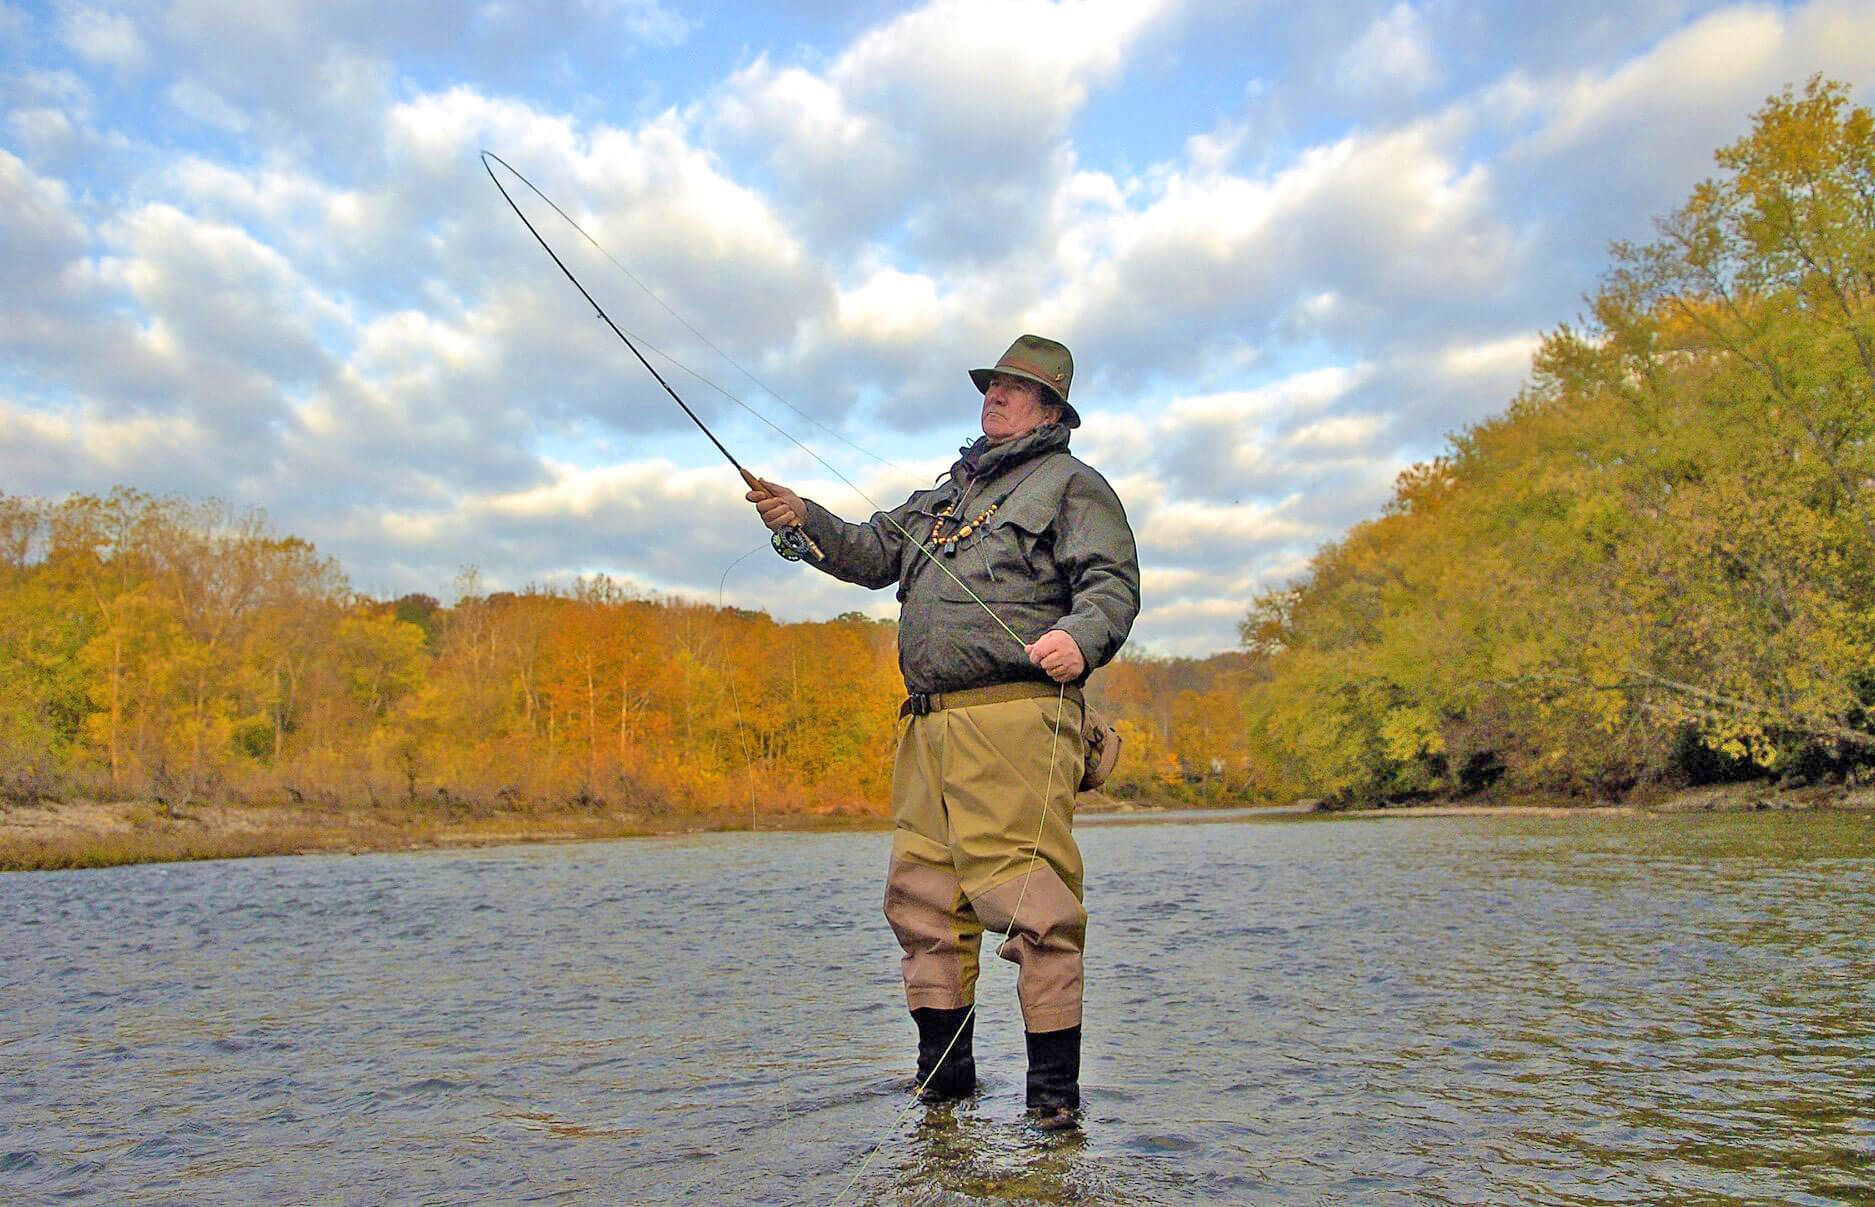 Former water conservationist Tim Guilfoile fishes in the Little Miami River.